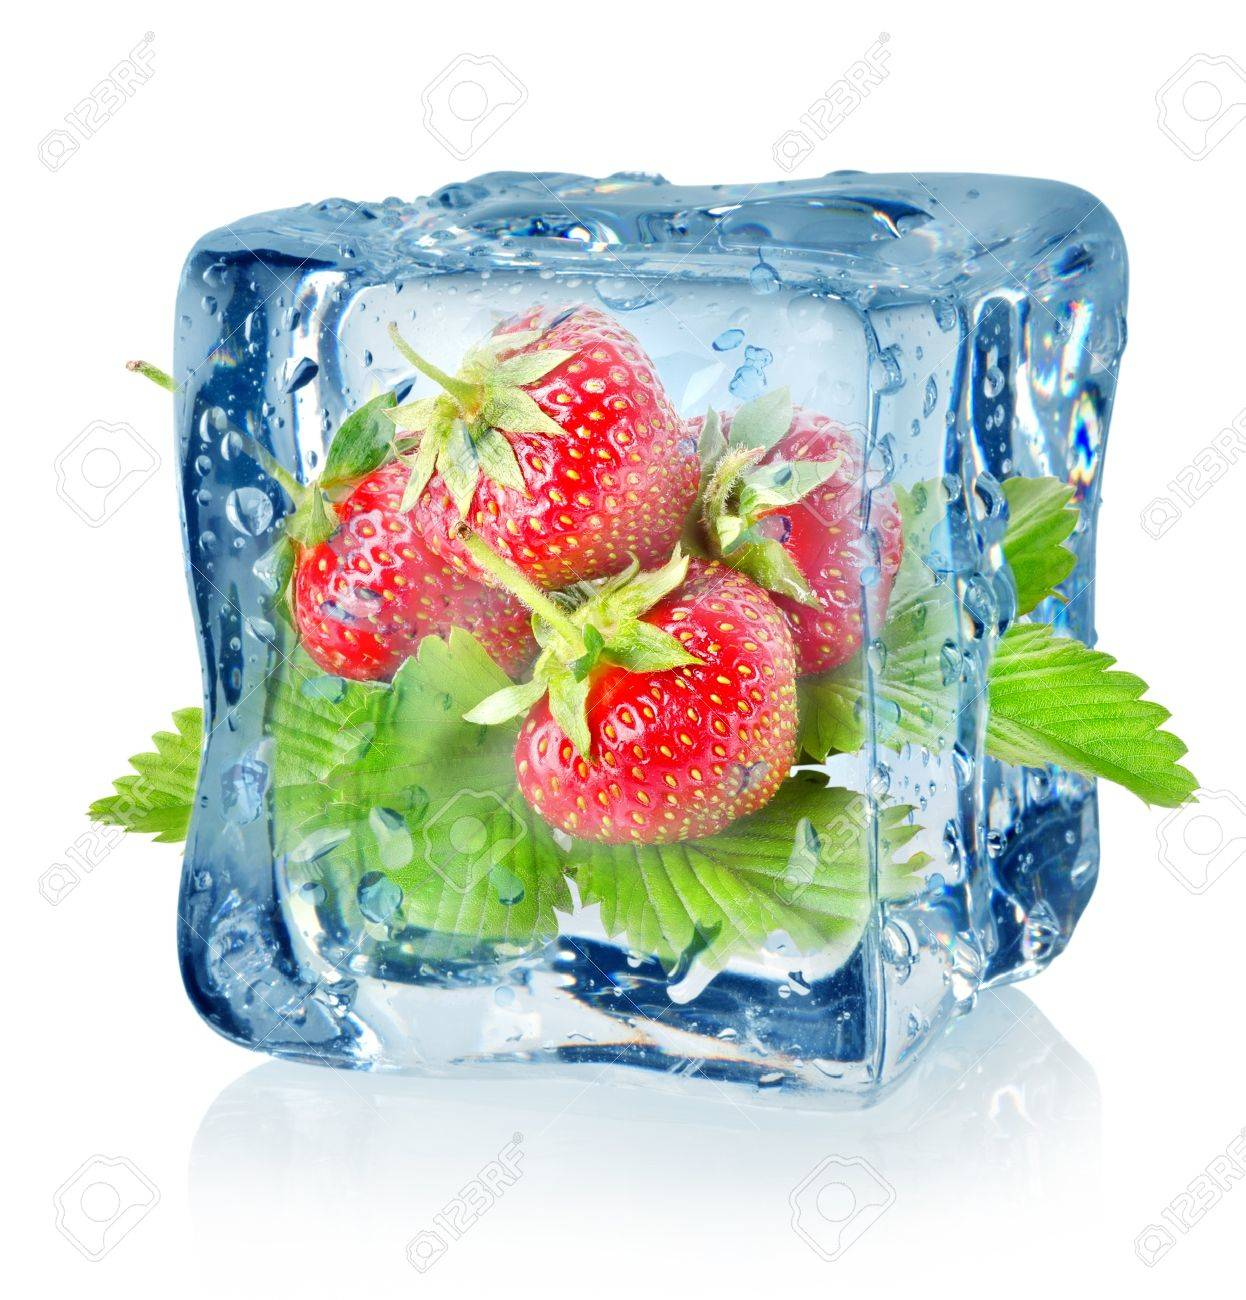 Ice cube and strawberry isolated Stock Photo - 16347437